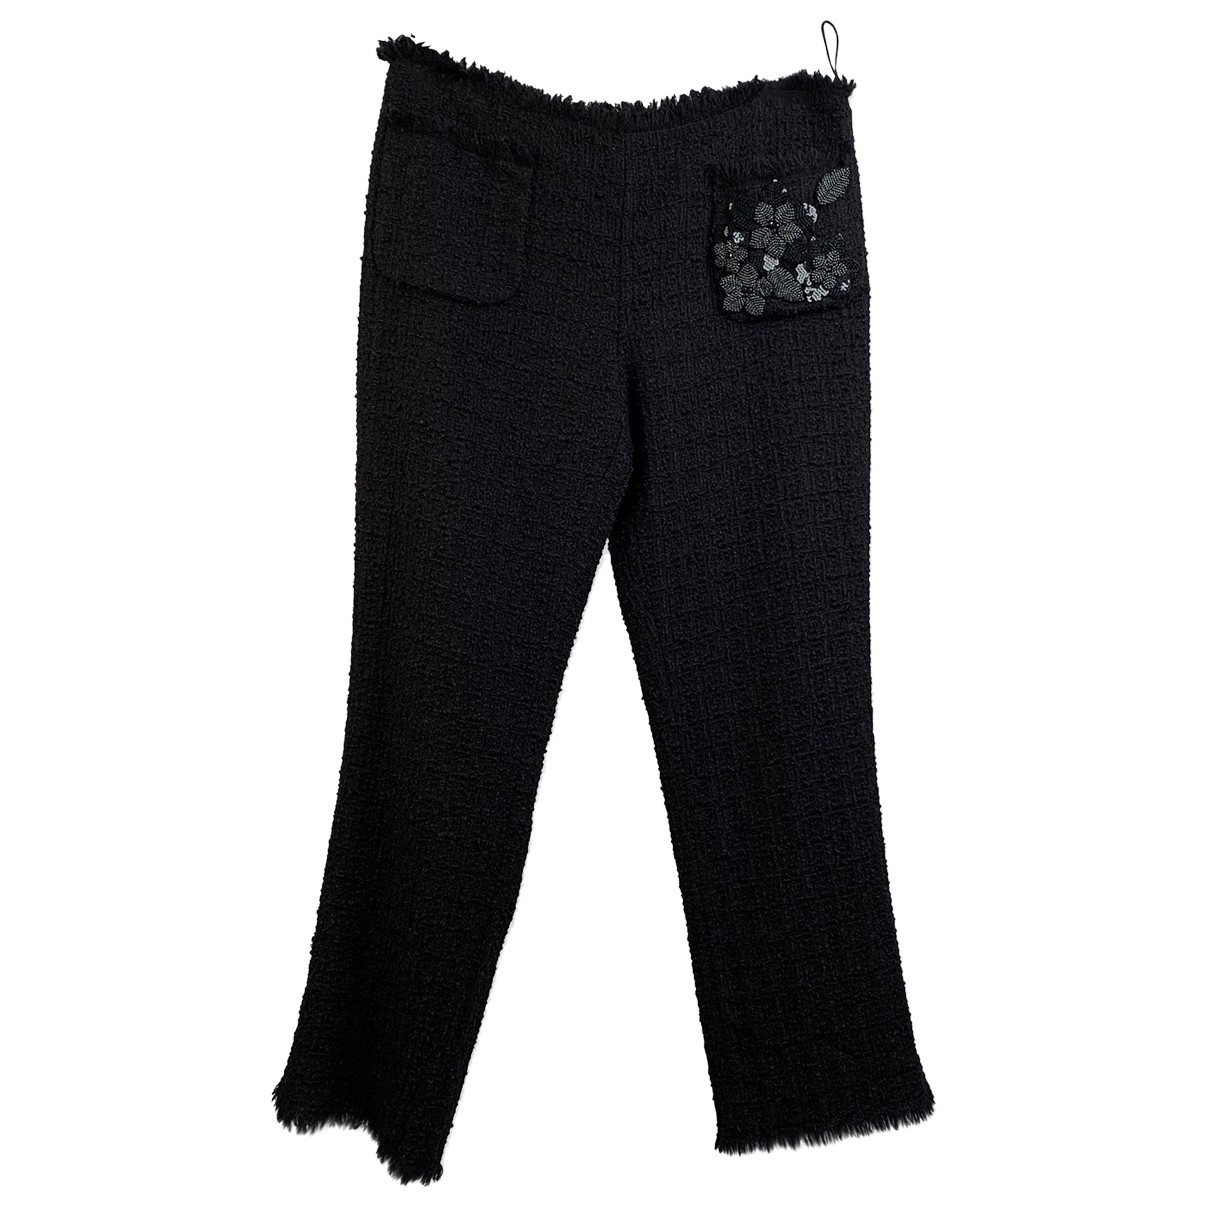 Moschino Cheap And Chic \N Black Cloth Trousers for Women M International